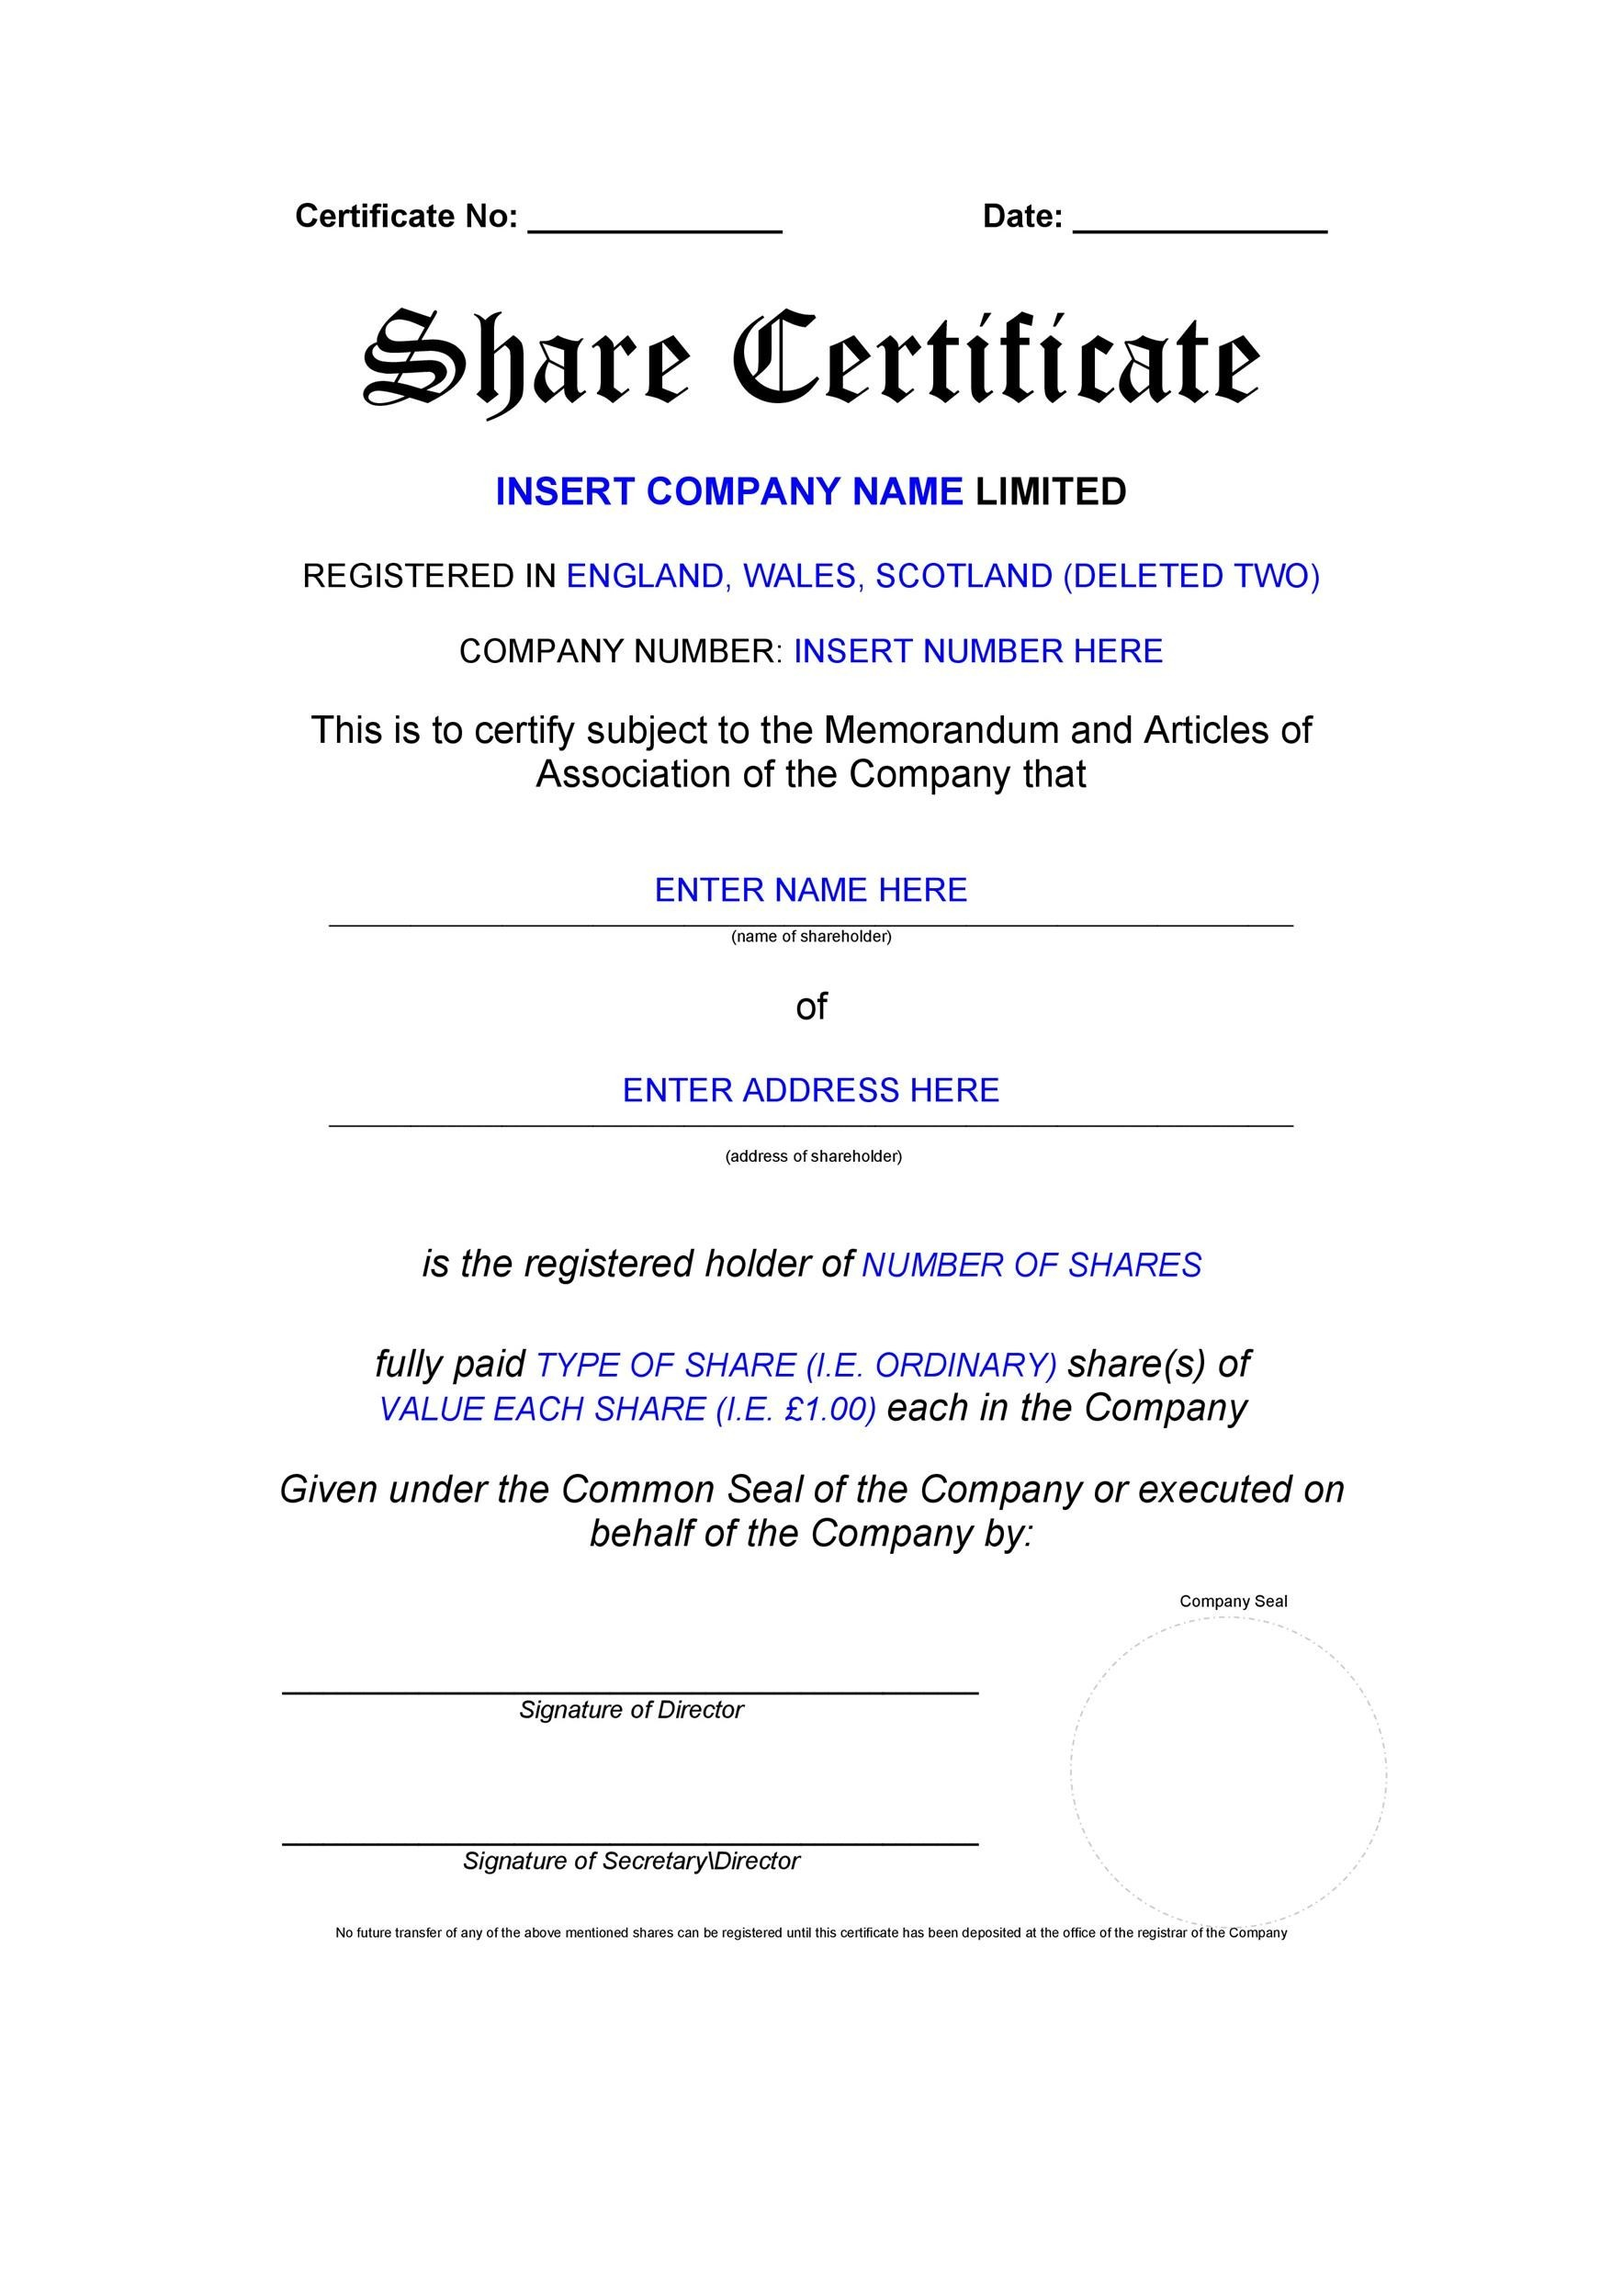 Rainbow factory stock certificate template by mr uhrig on share 1000 images about stock certificate template yadclub Image collections